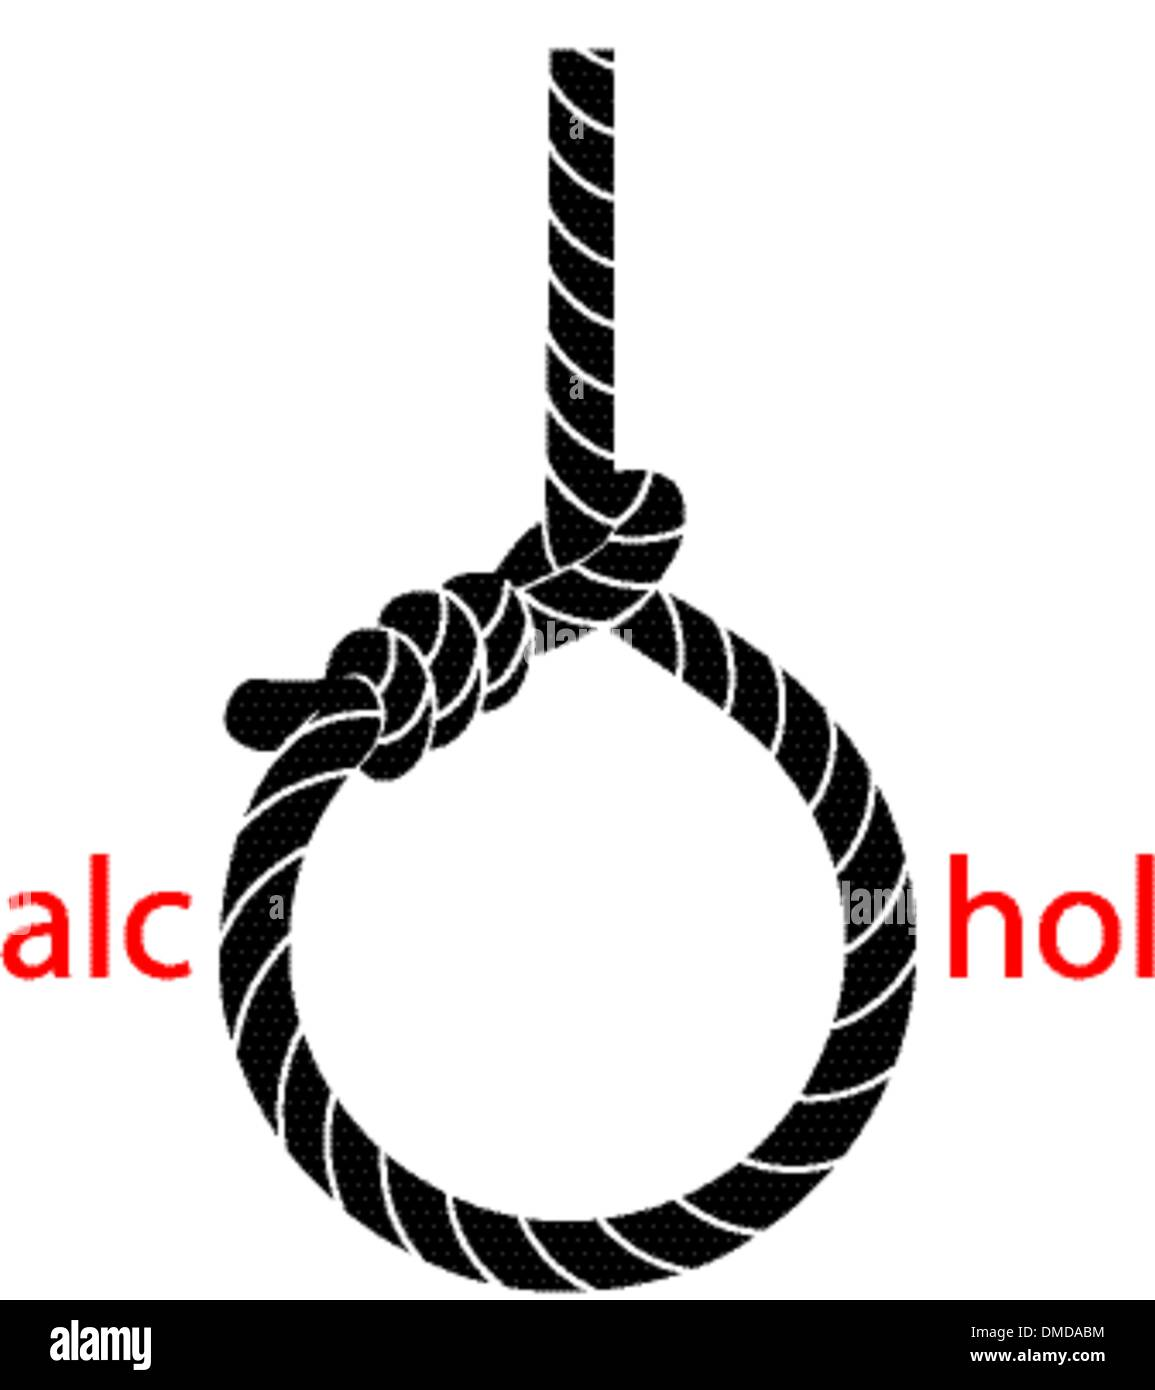 Hangman's noose with protest against alcohol - Stock Image